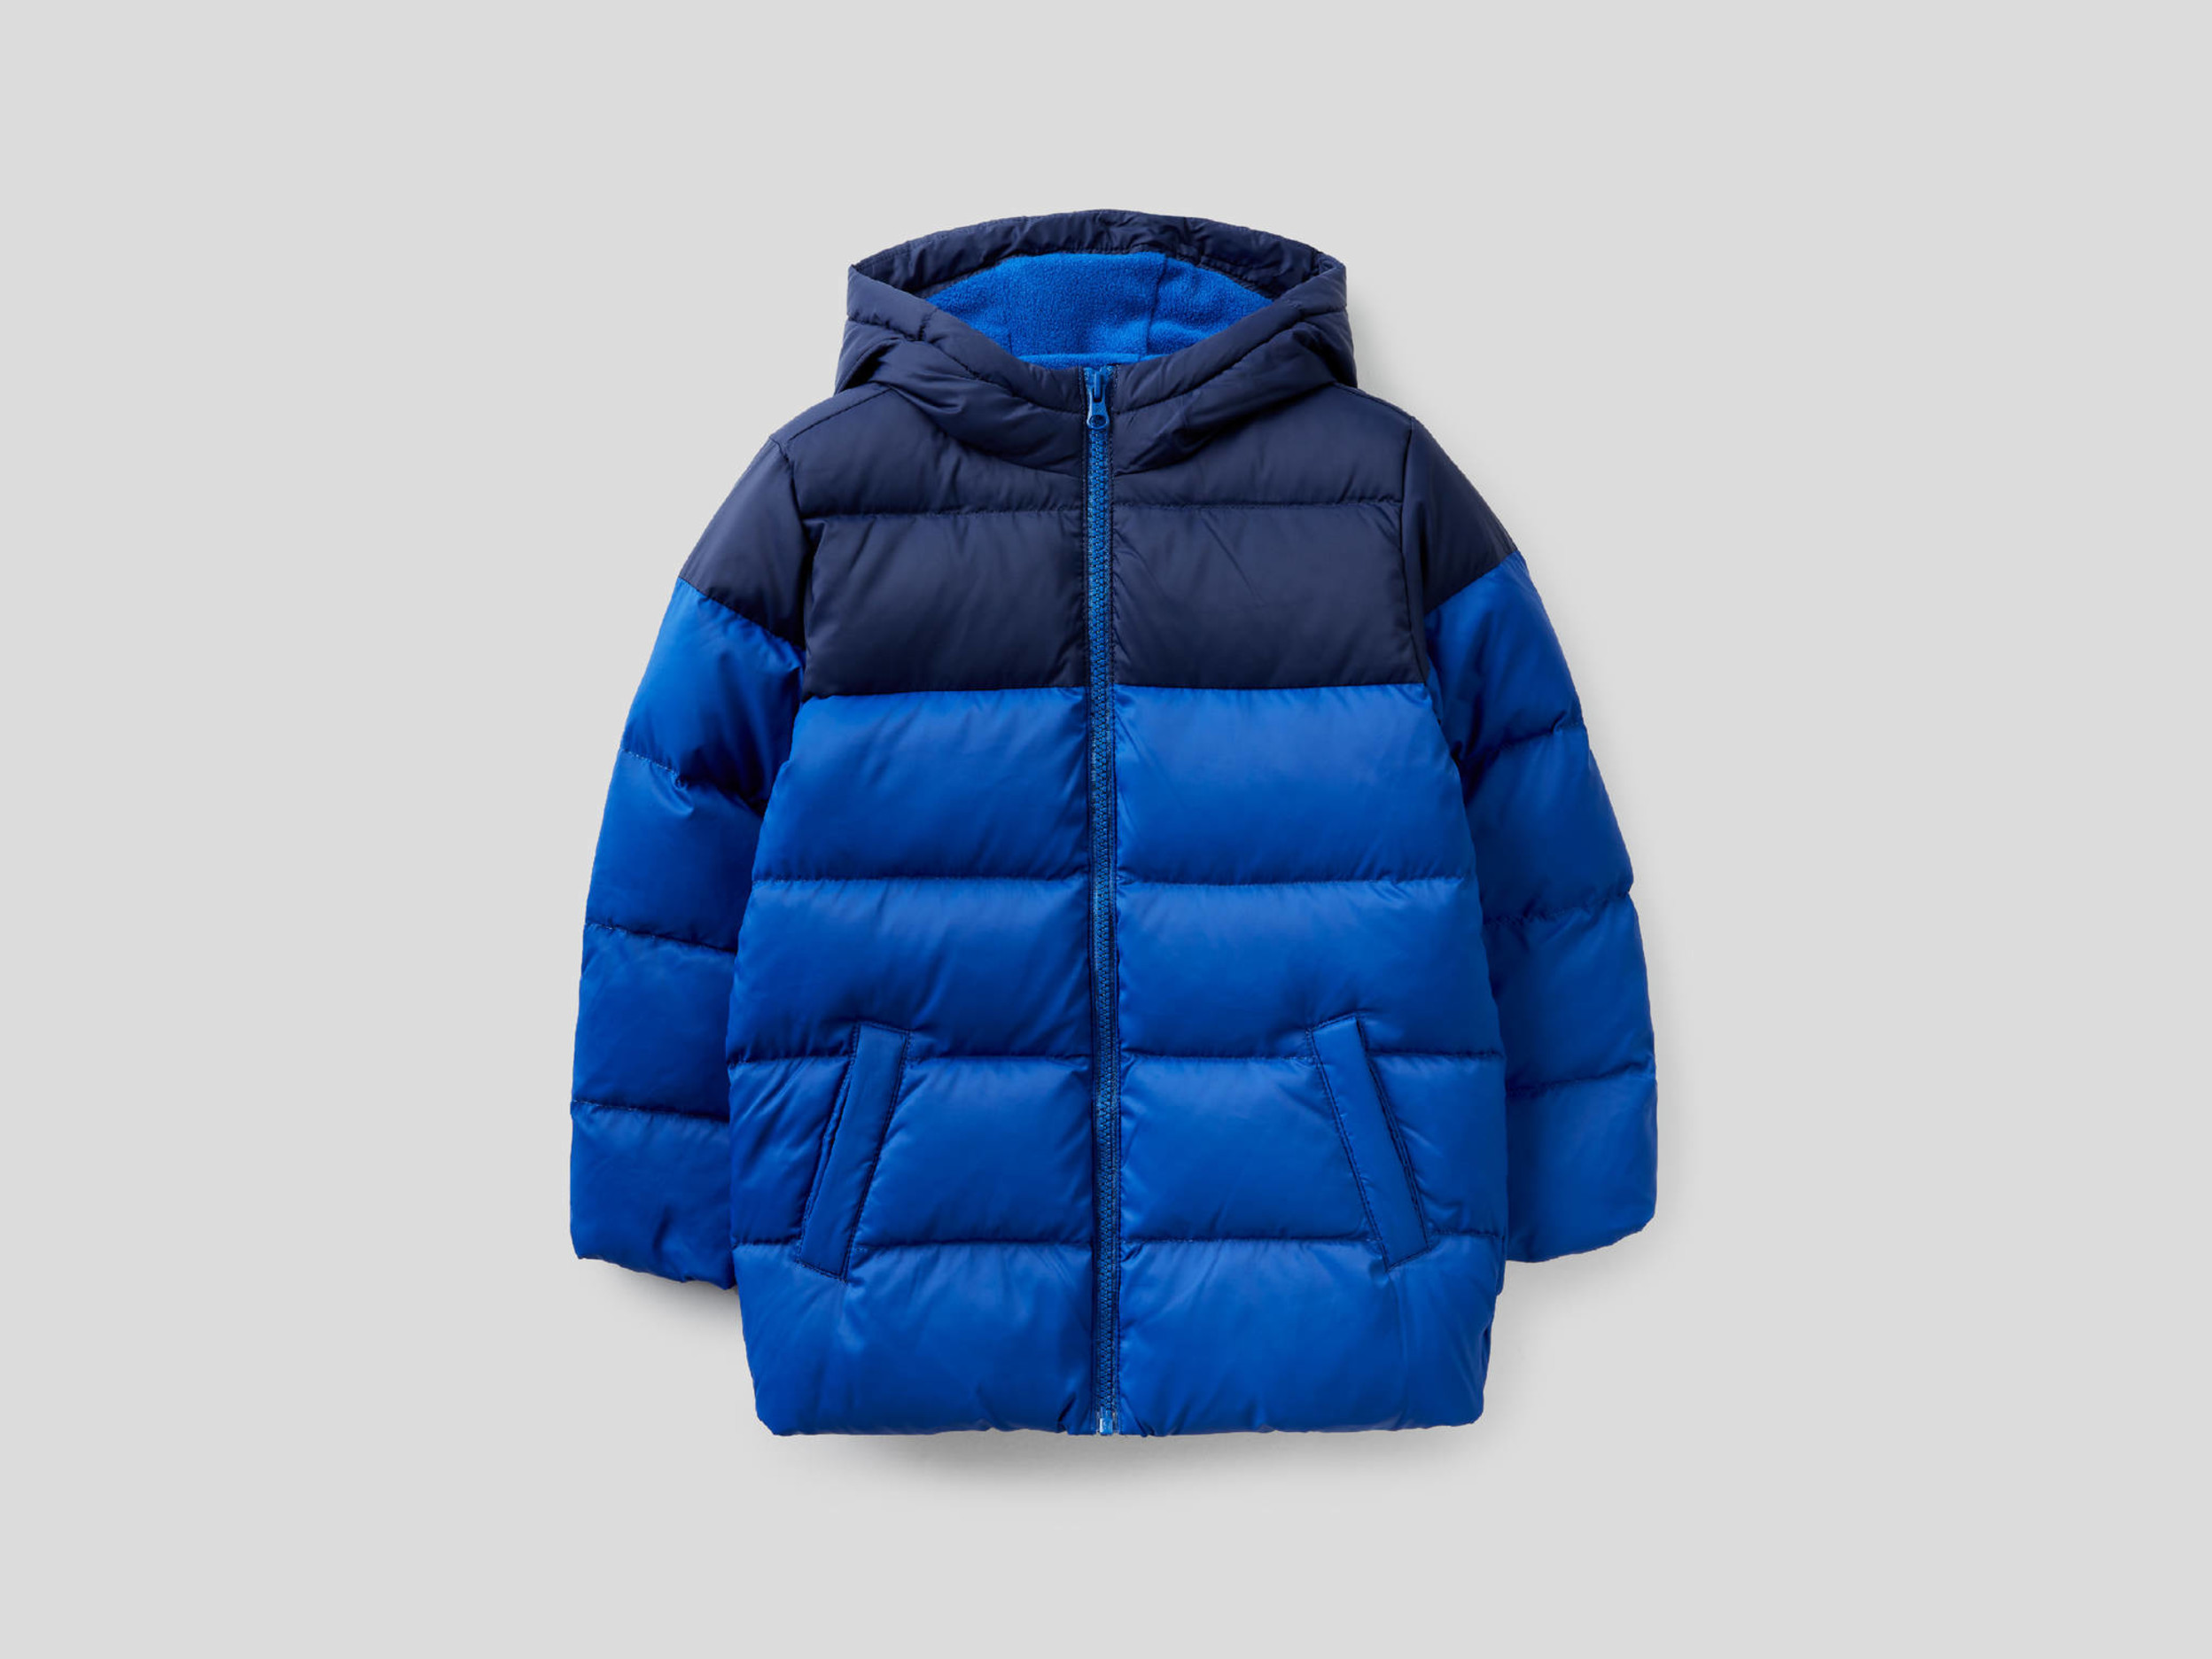 Benetton, Two-tone Puffer Jacket With Hood, size , Bright Blue, Kids